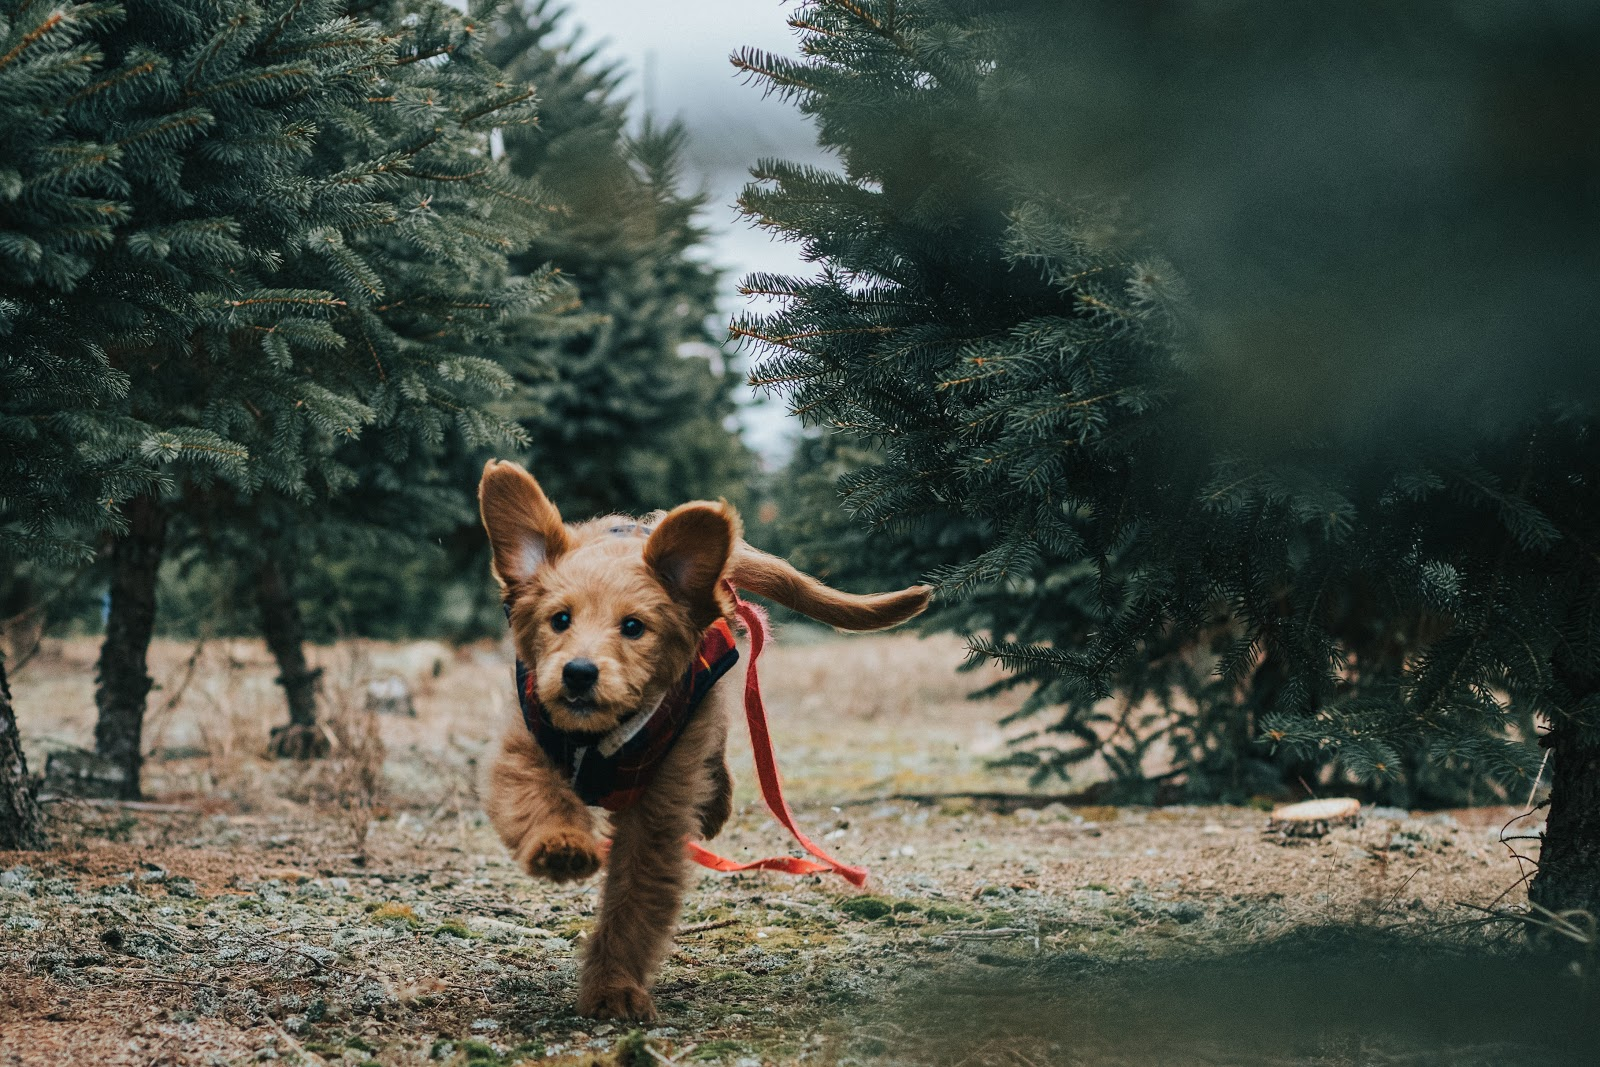 Small dog running through a field of pine trees